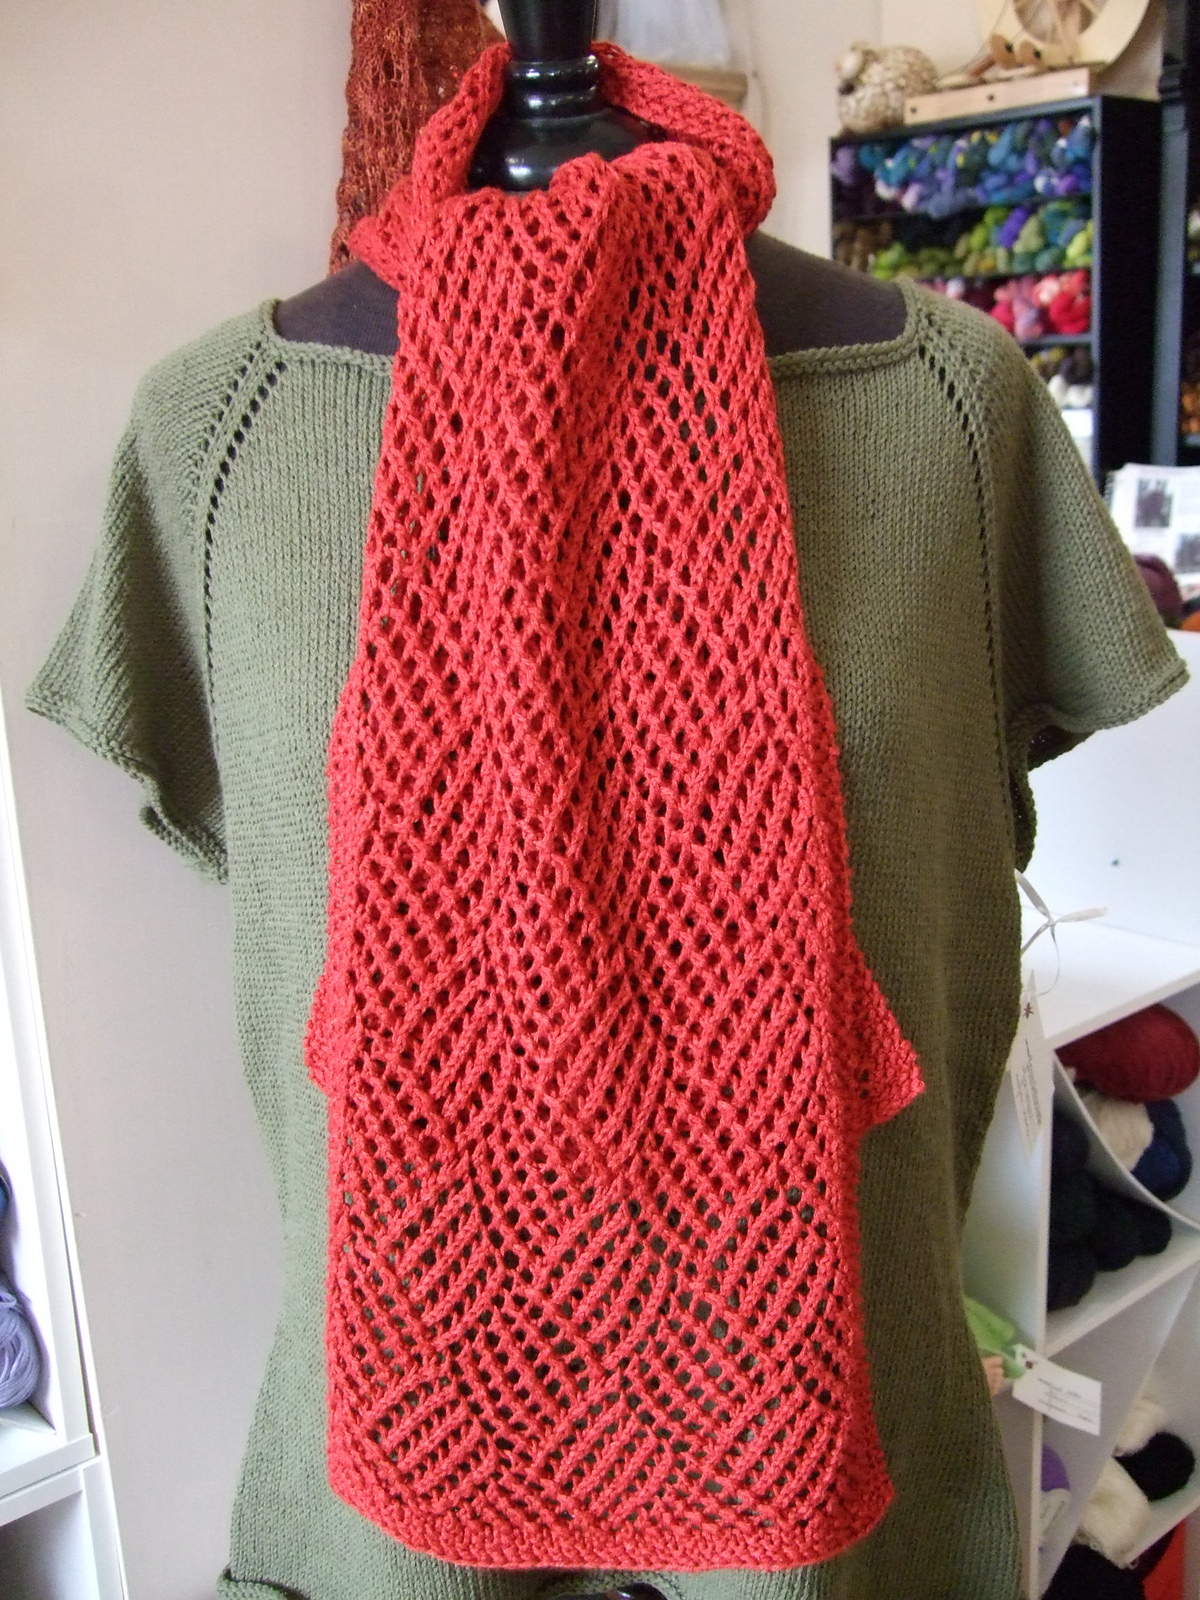 Reversible Knitting Patterns For Scarves Cool Decorating